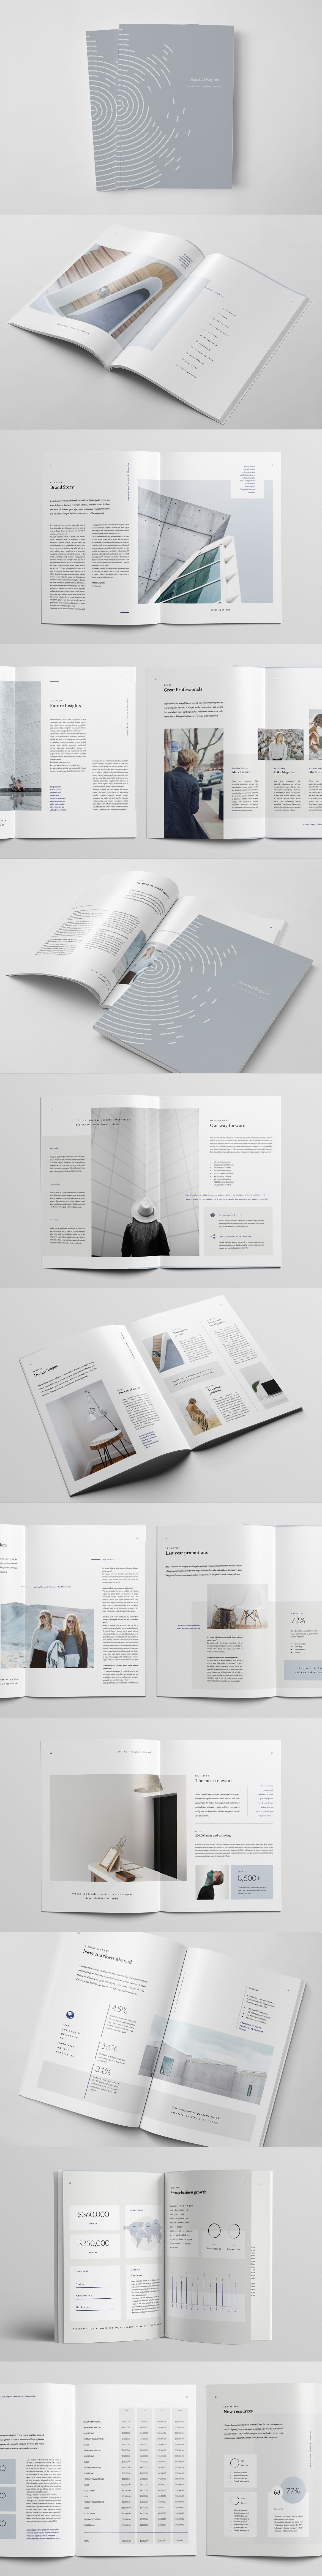 28 Pages Annual Report Template InDesign INDD - A4 and US letter ...